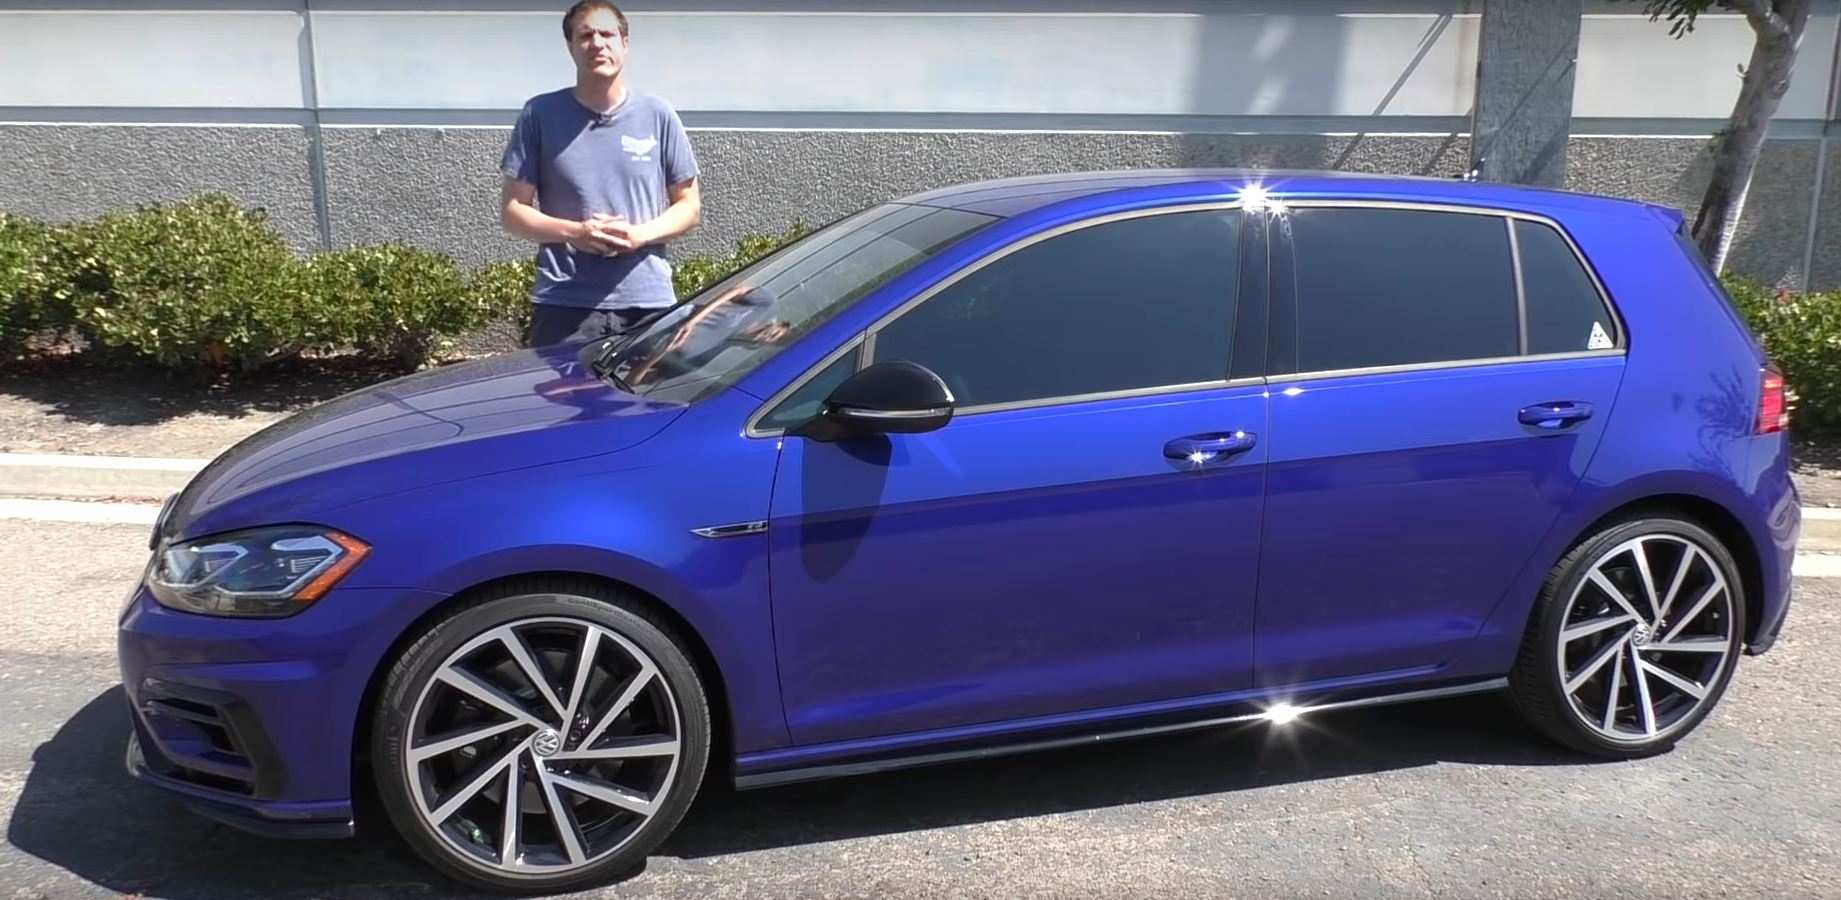 91 Great 2019 Volkswagen Golf R Price and Review for 2019 Volkswagen Golf R